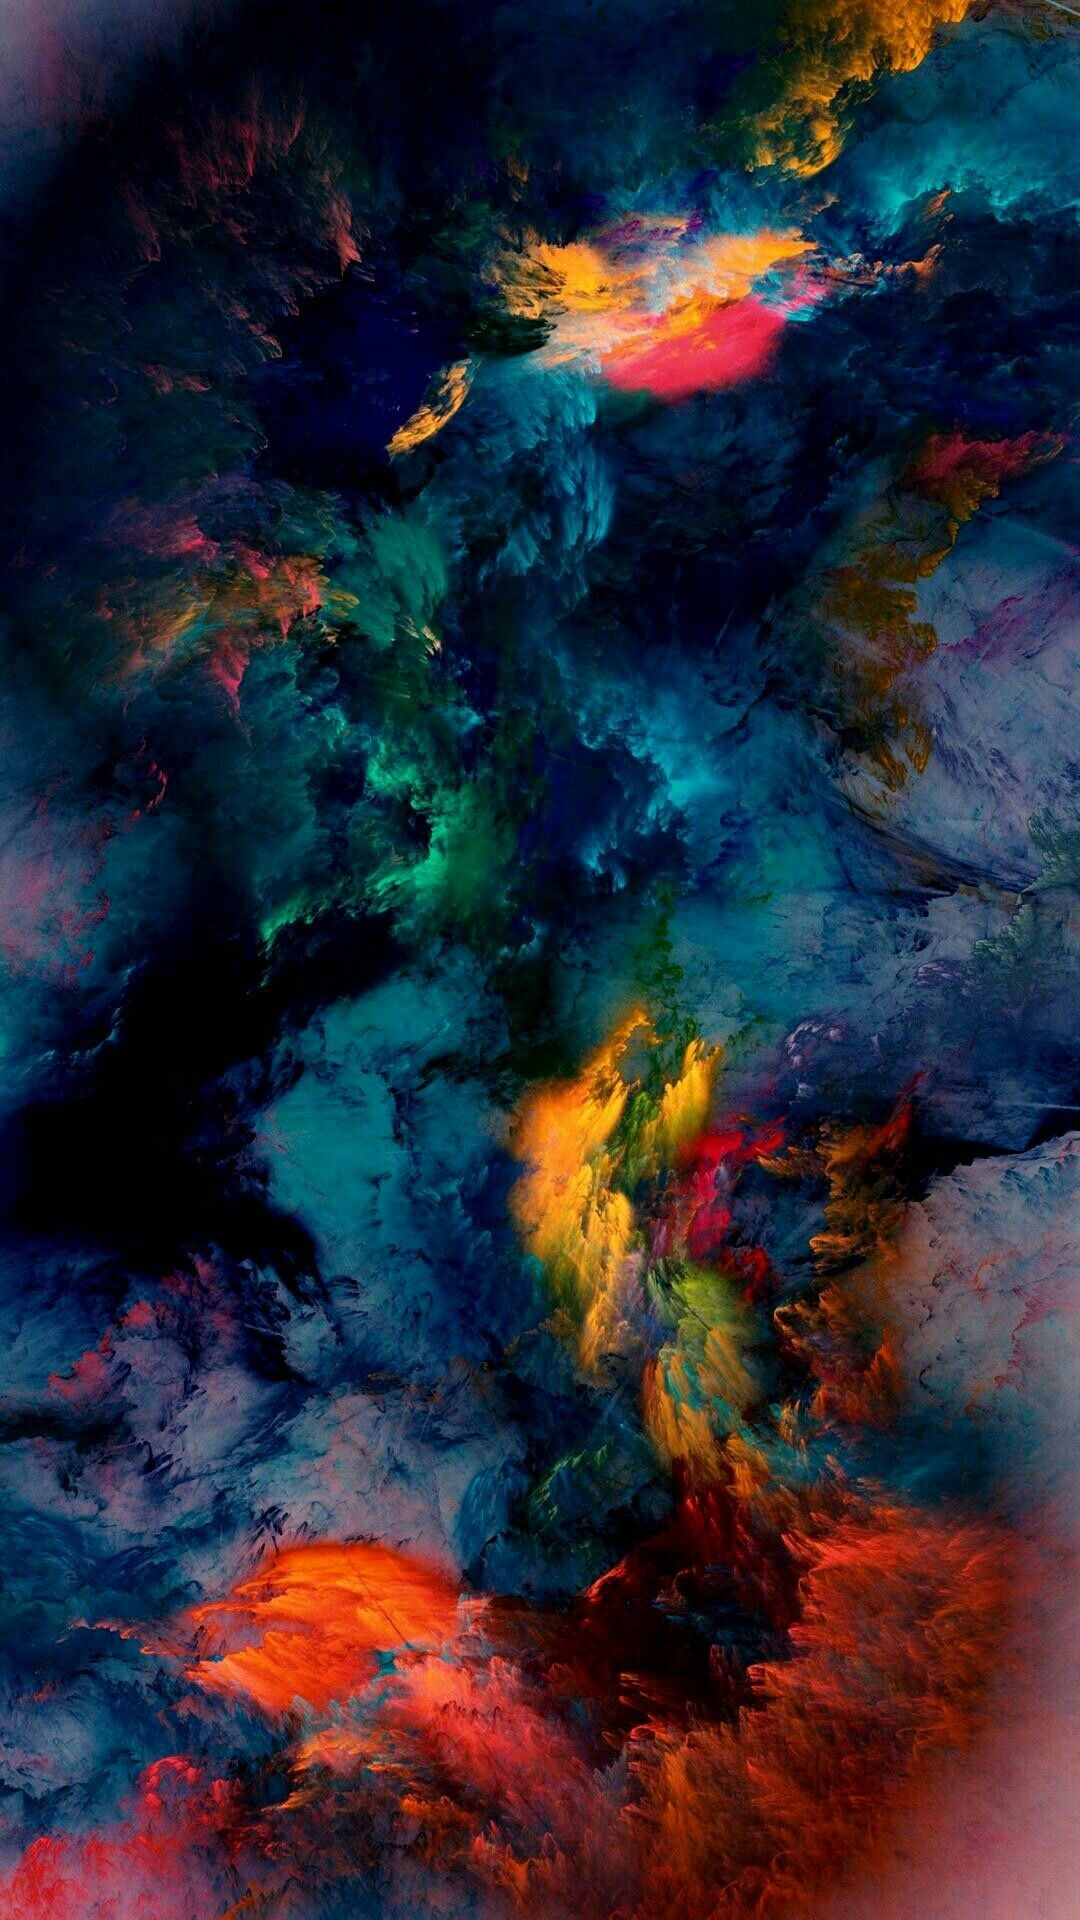 Res: 1080x1920, Ios 11 Wallpaper, Indie Art, Hipster, Free, Ideas, Board, Hipsters, Thoughts